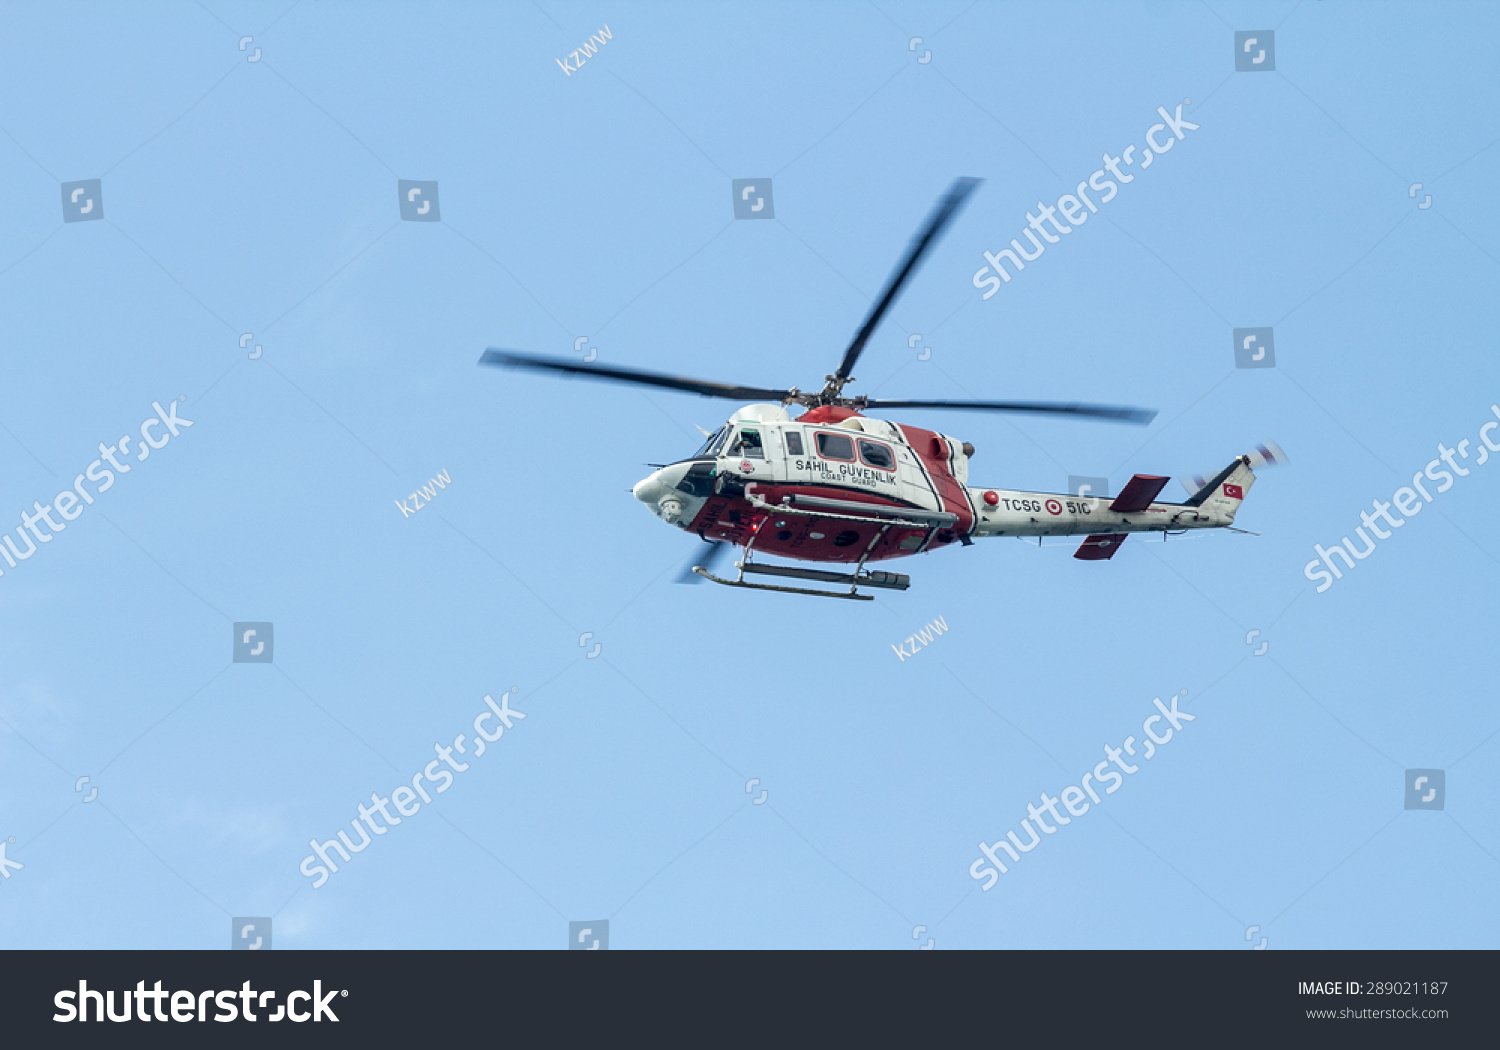 ANTALYA TURKEY June 7 2015 Coast Guard Helicopter during parliamentary elections in Turkey June 7 2015